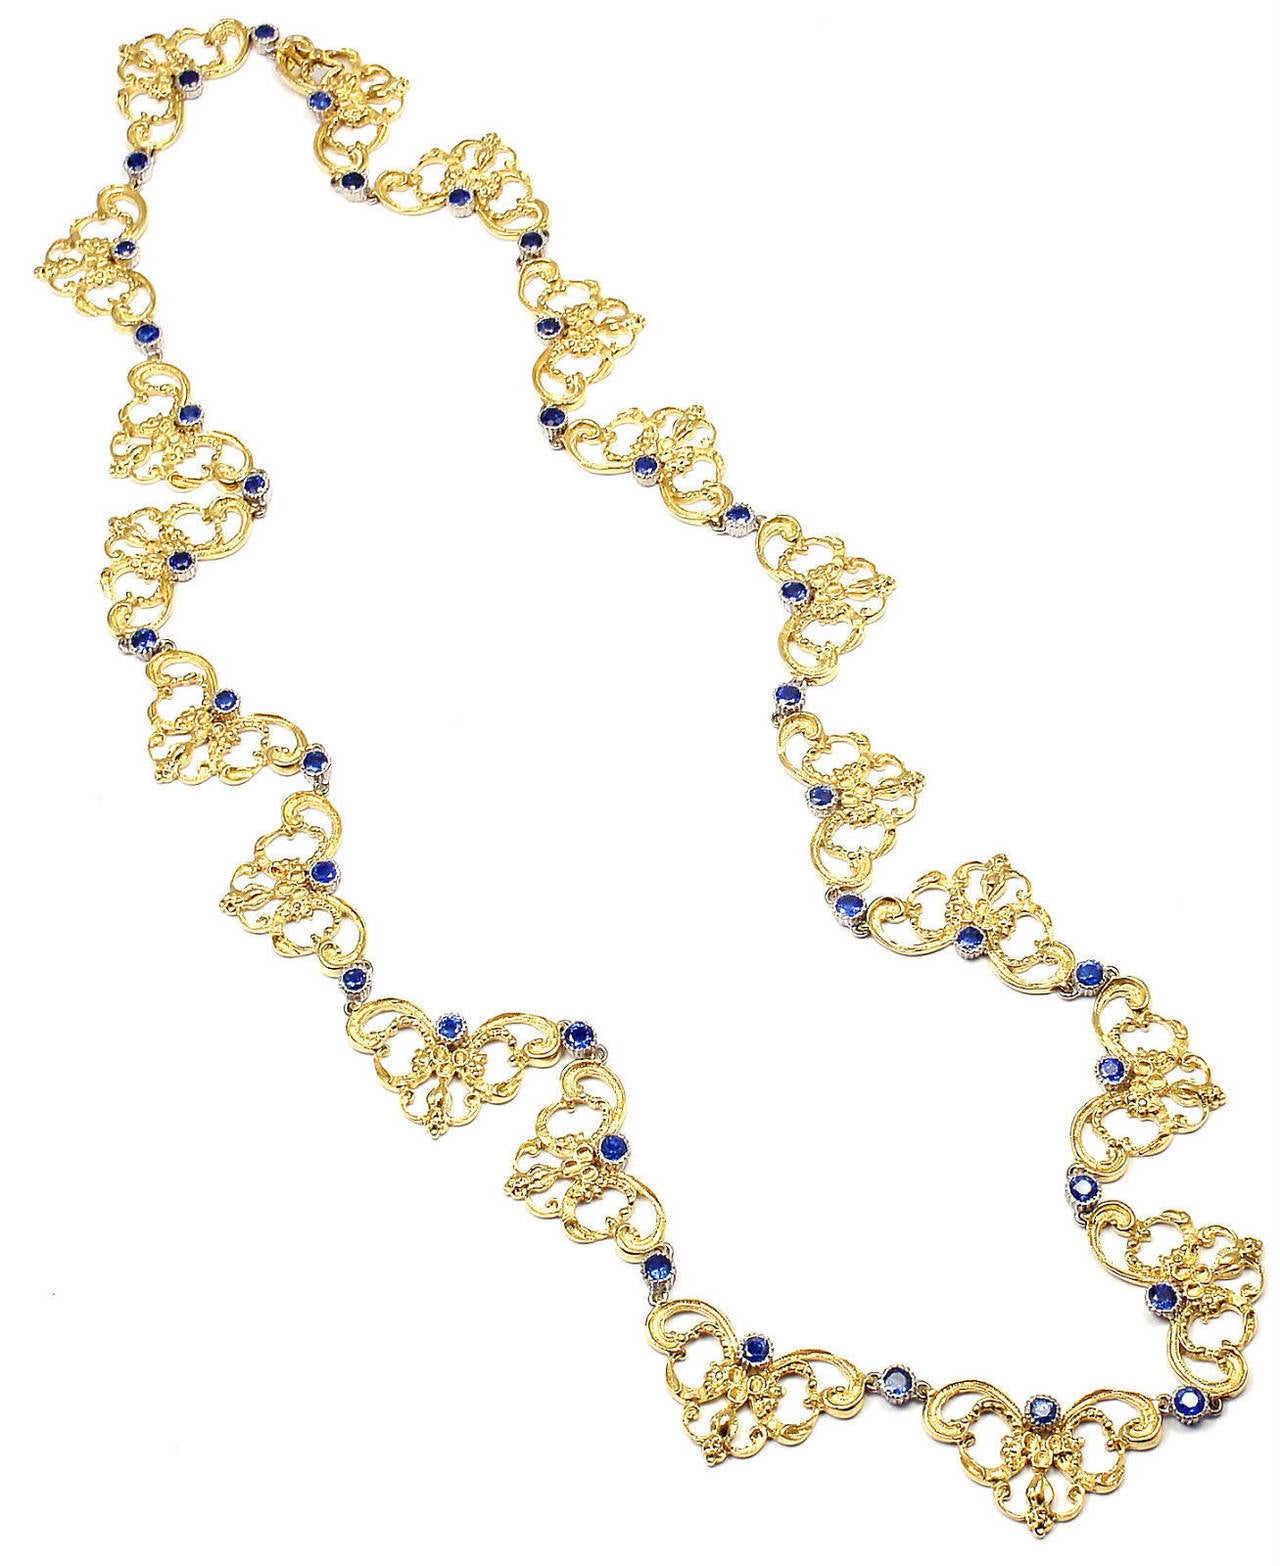 Buccellati Sapphire Gold 24 Inch Long Necklace In As New Condition For Sale In Southampton, PA